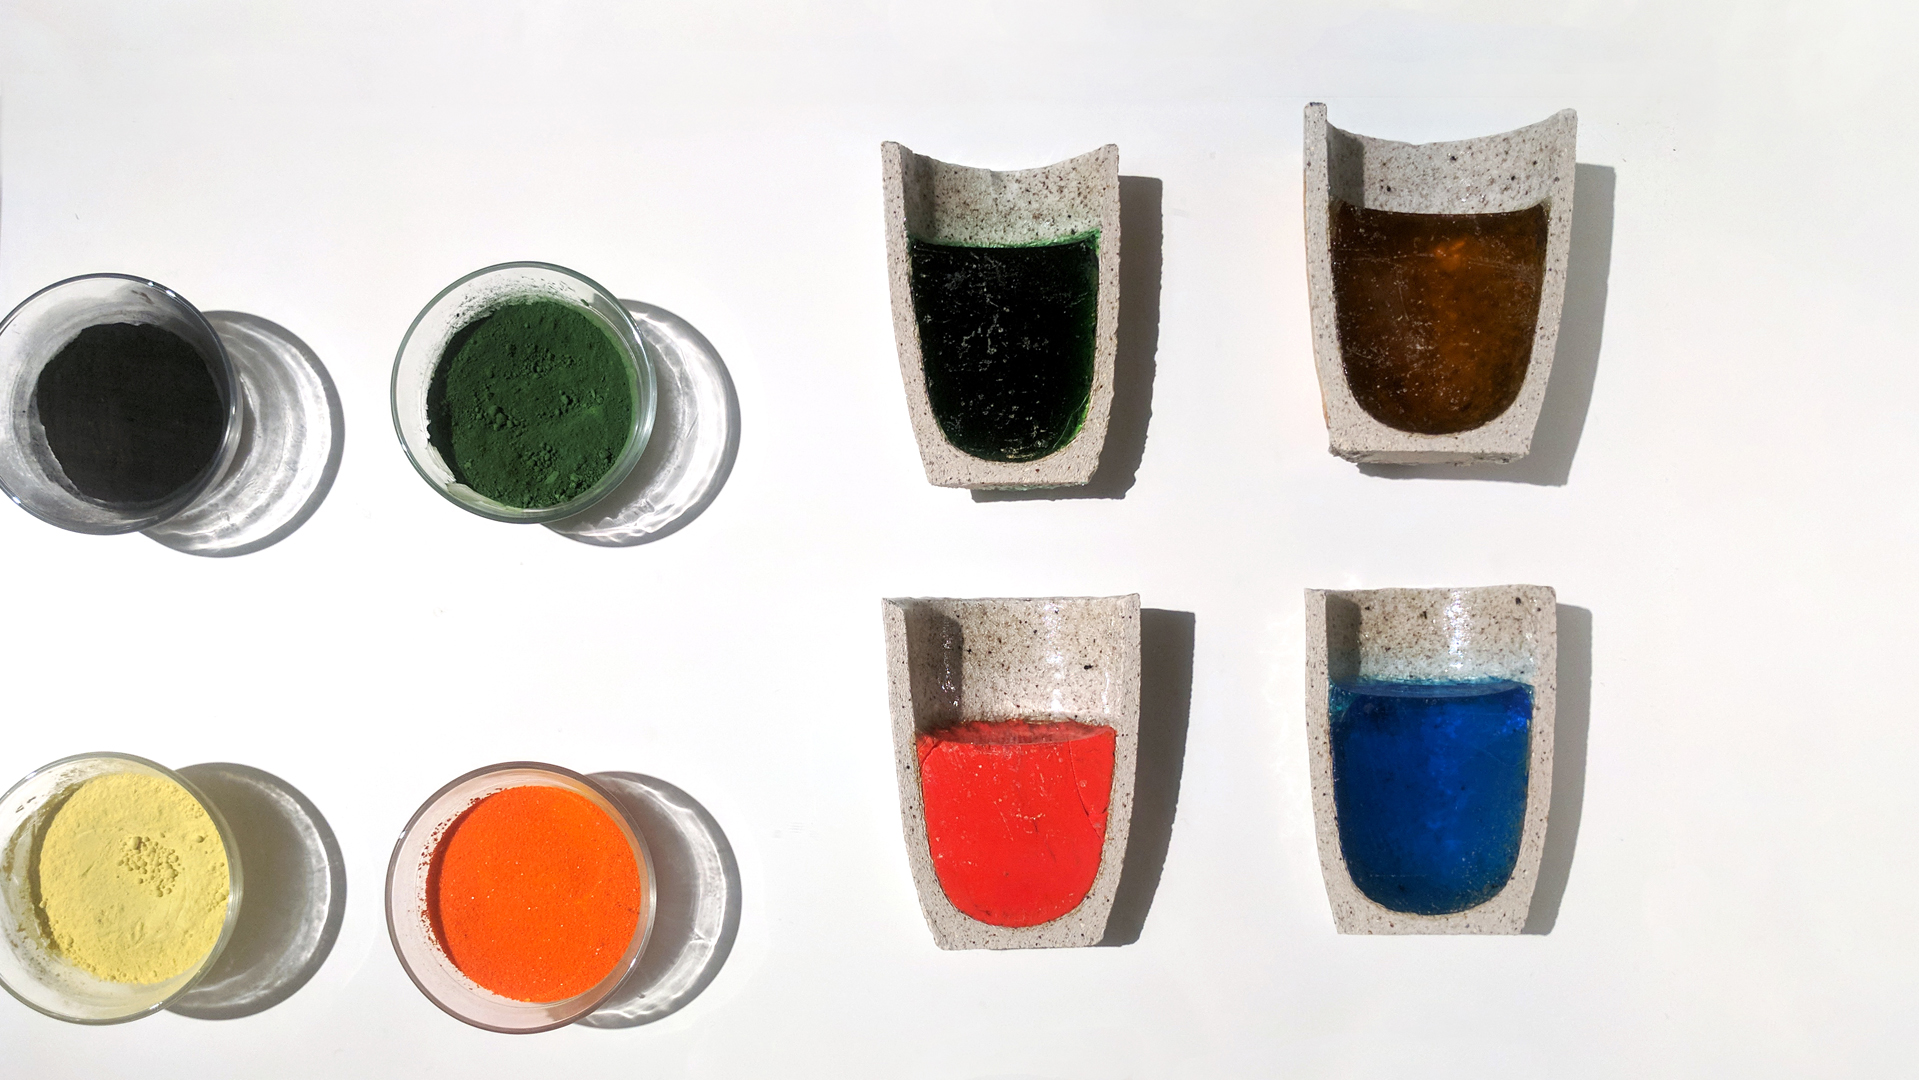 Various metal oxides (left) are dissolved into the glass to change it's color. The cobalt blue on the bottom right is actually made with cobalt oxide! Ceramic pots called crucibles are used to hold the the molten glass mixture. The crucibles on the right have been cooled down and cut in half.